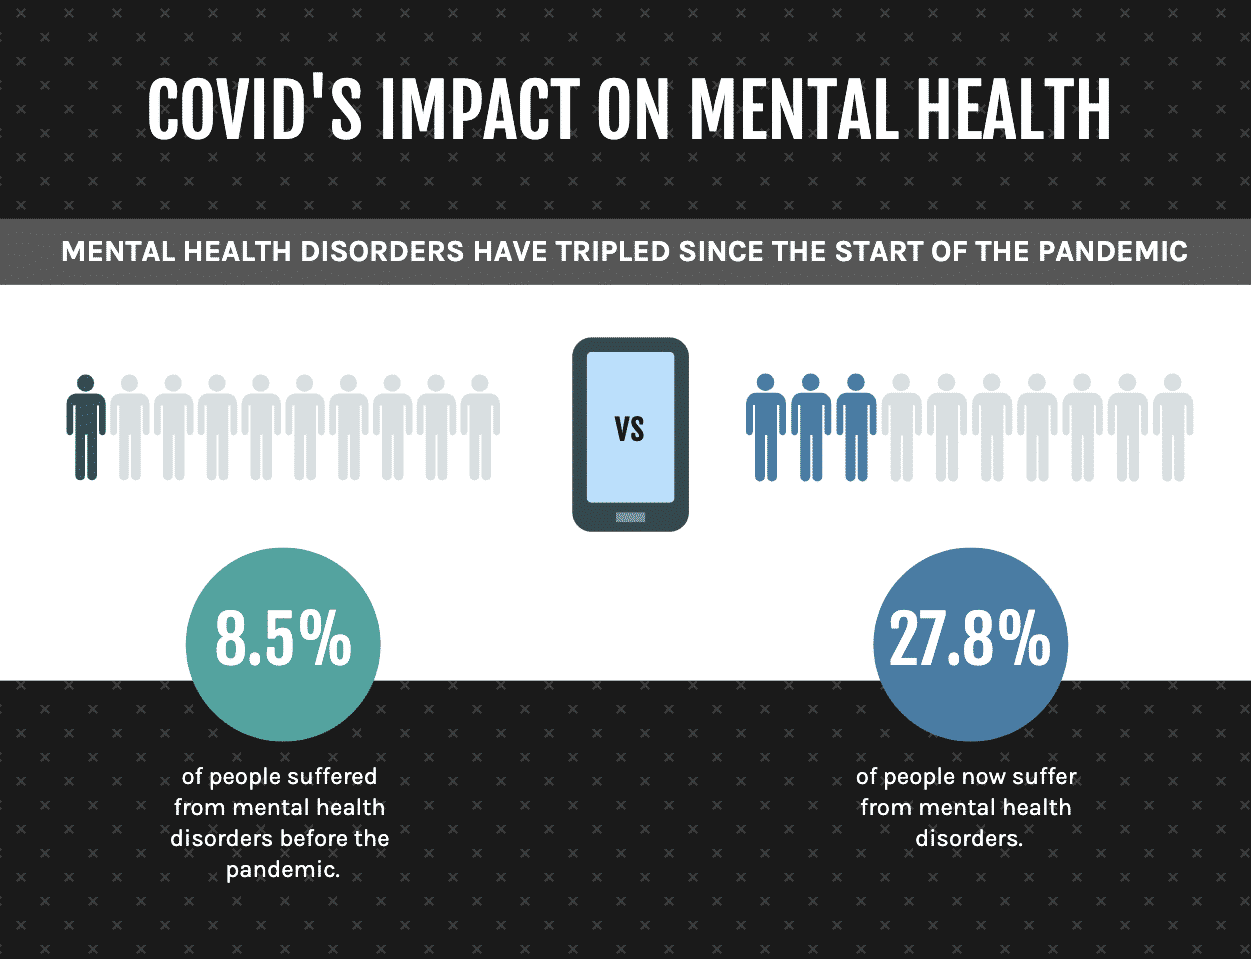 Graphical depiction of covid's impact on mental health disorders